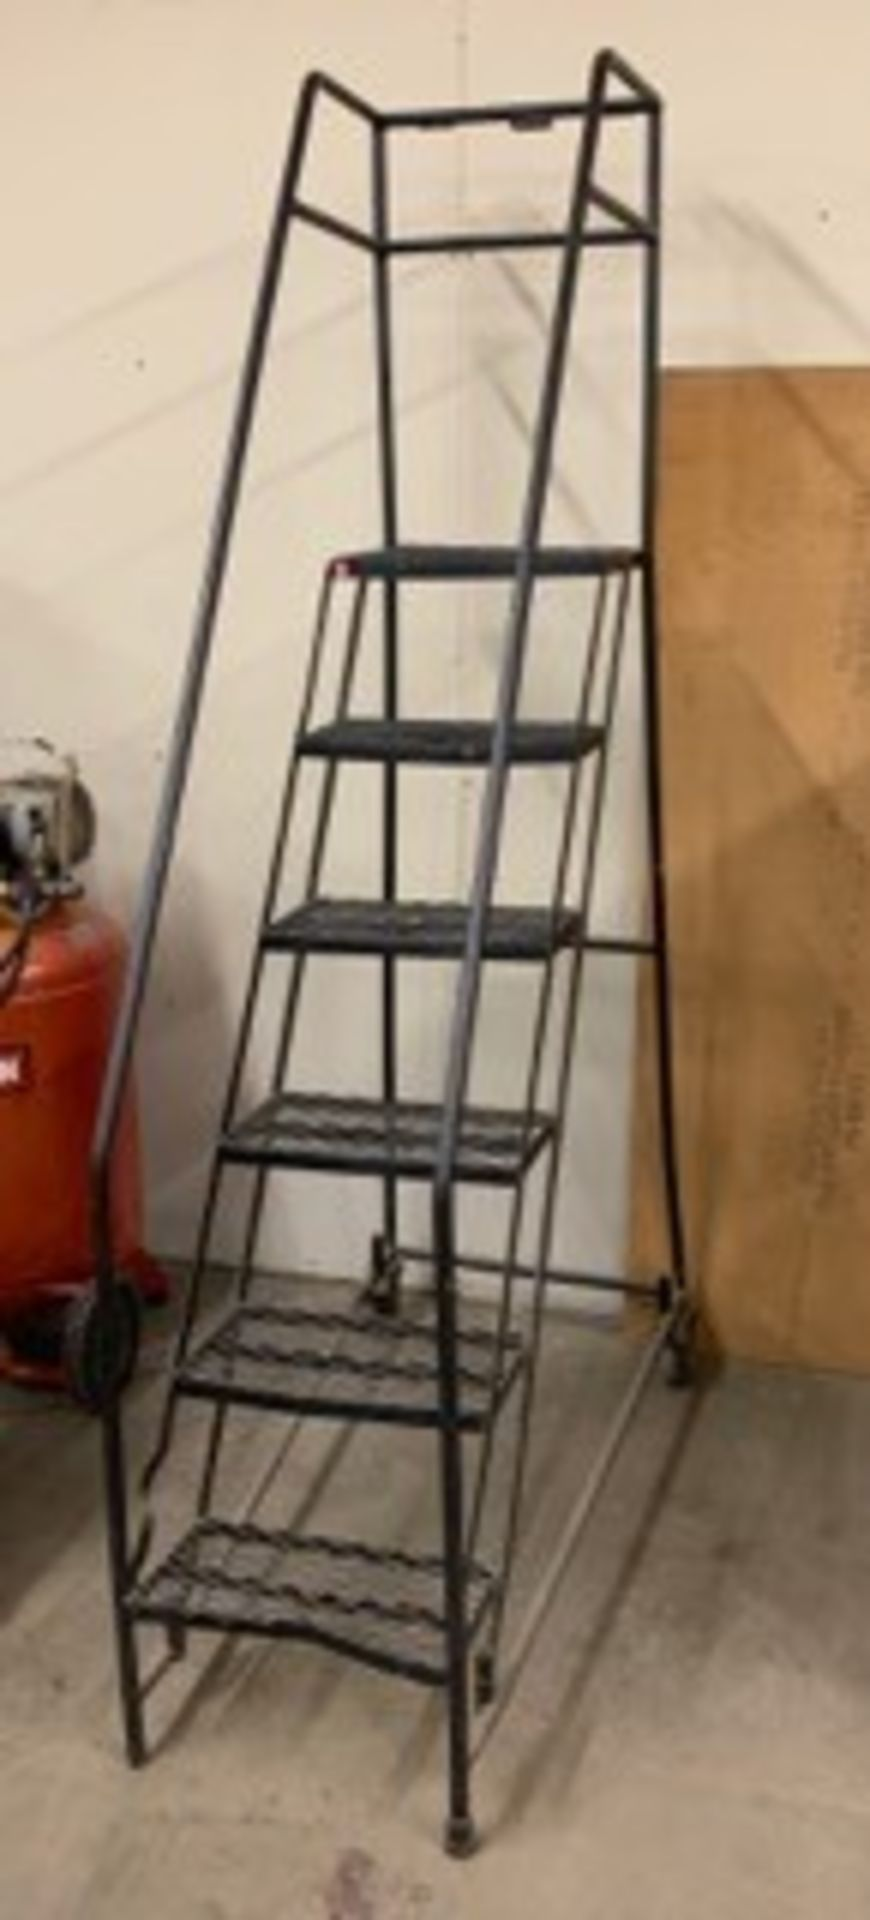 Lot 5063 - SAFETY LADDER (LOCATED AT: 16335 LIMA ROAD, HUNTERTOWN, IN 46748)